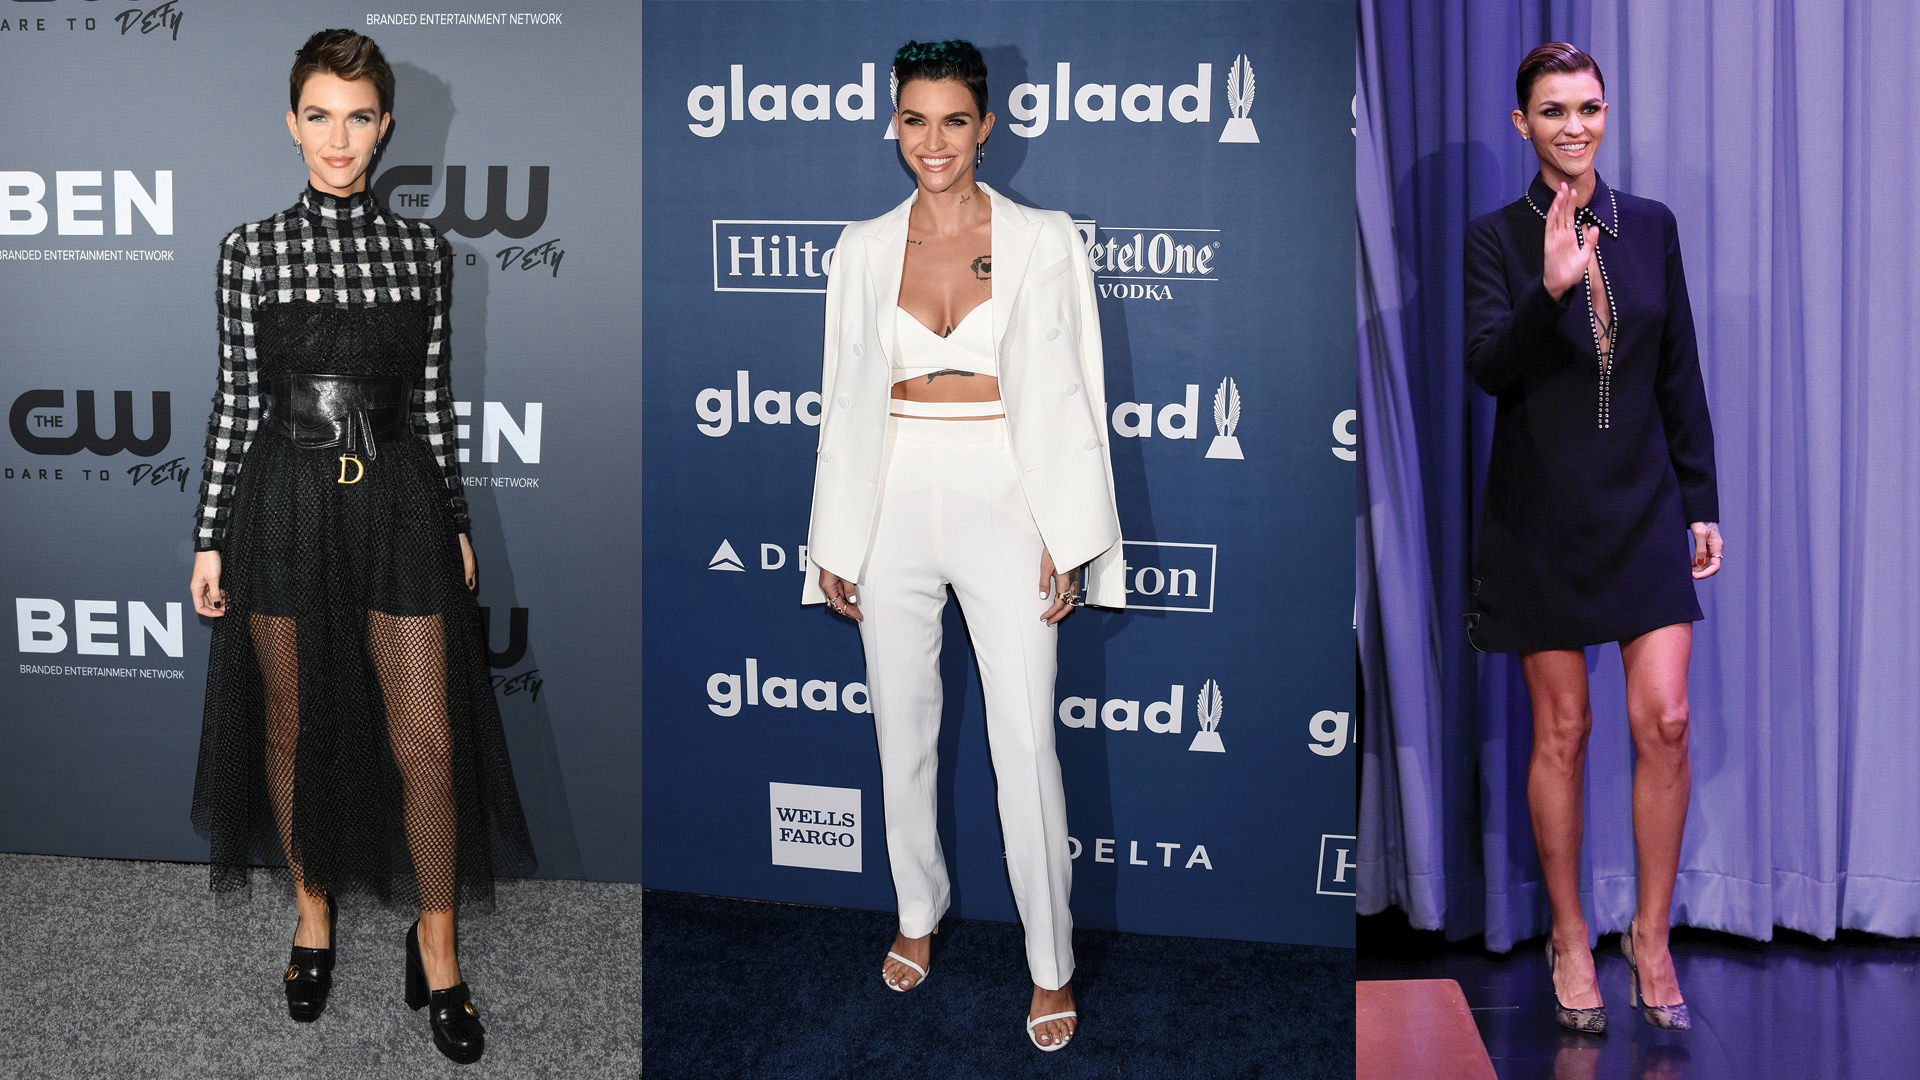 The stunning Batwoman star is a style inspiration. Click to see more of the best Ruby Rose fashion moments.